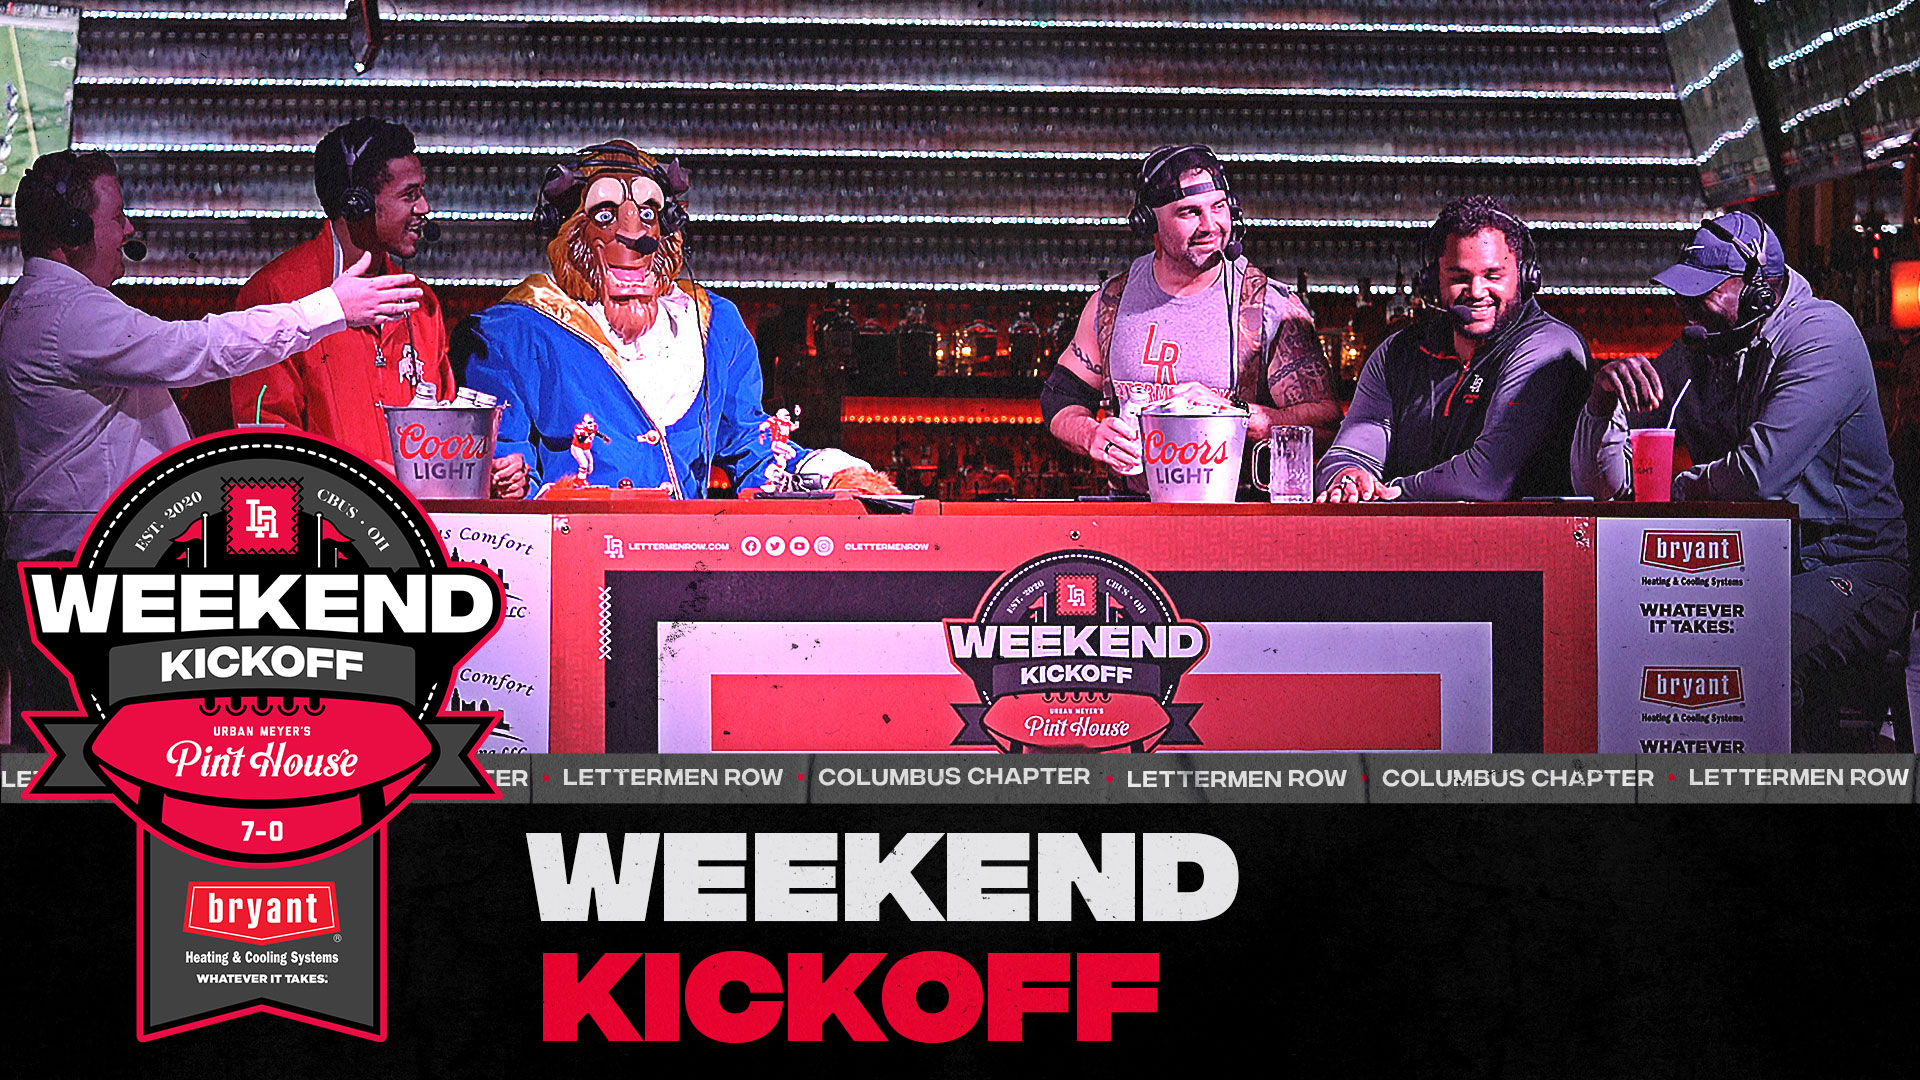 Weekend-Kickoff-featured-image-revised